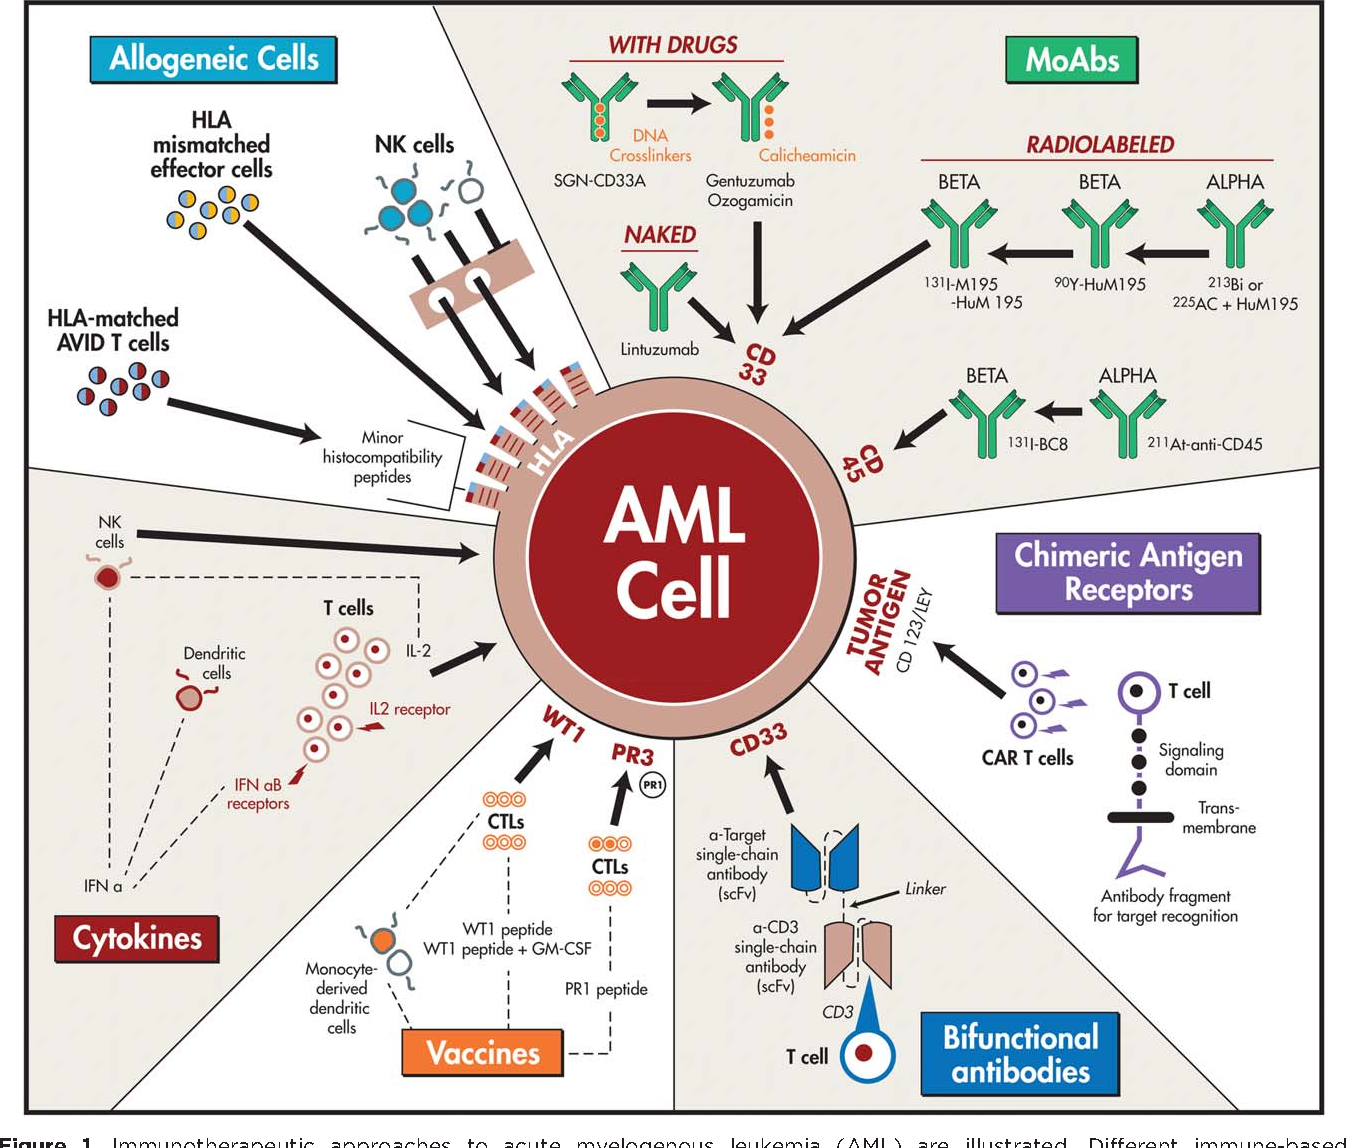 Figure 1 from Immunotherapy in acute myeloid leukemia